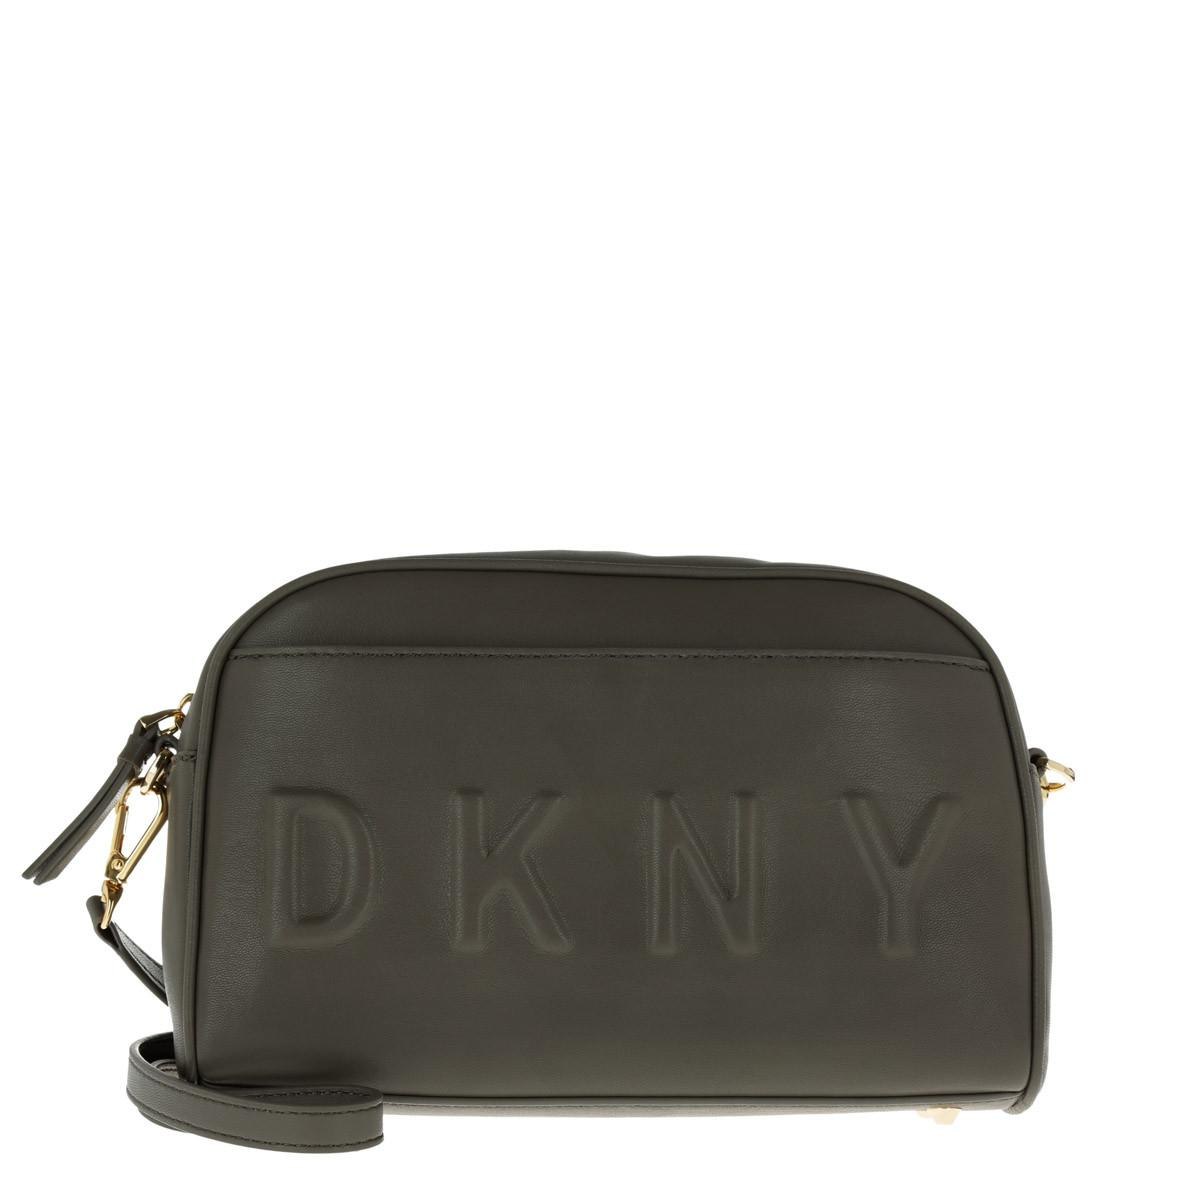 Cross Body Bags - Tilly Circa Crossbody Bag Clay - beige - Cross Body Bags for ladies DKNY I1Bius3iR8